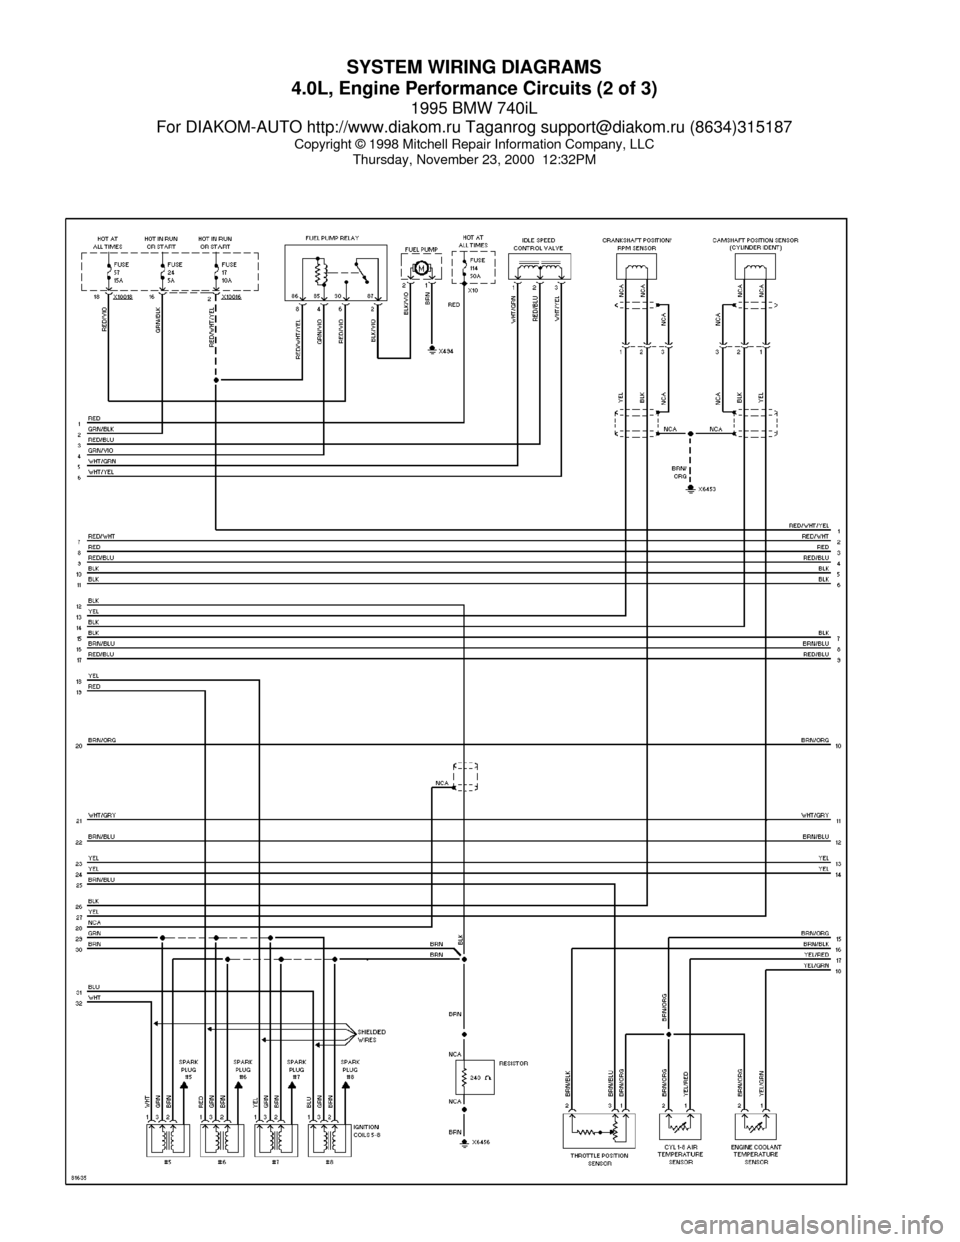 bmw 740il 1995 e38 system wiring diagrams bmw e38 amplifier wiring diagram